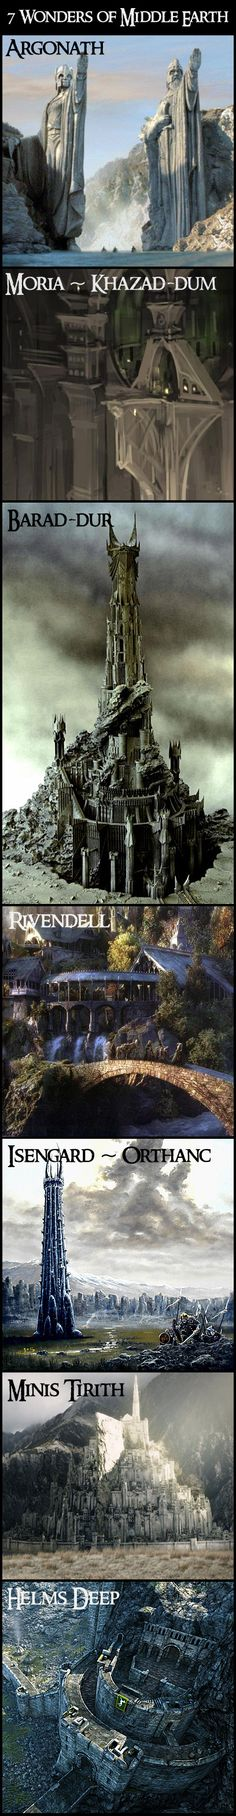 7 Wonders of Middle Earth. Oh how I wish these places were real!! Lord of the Rings